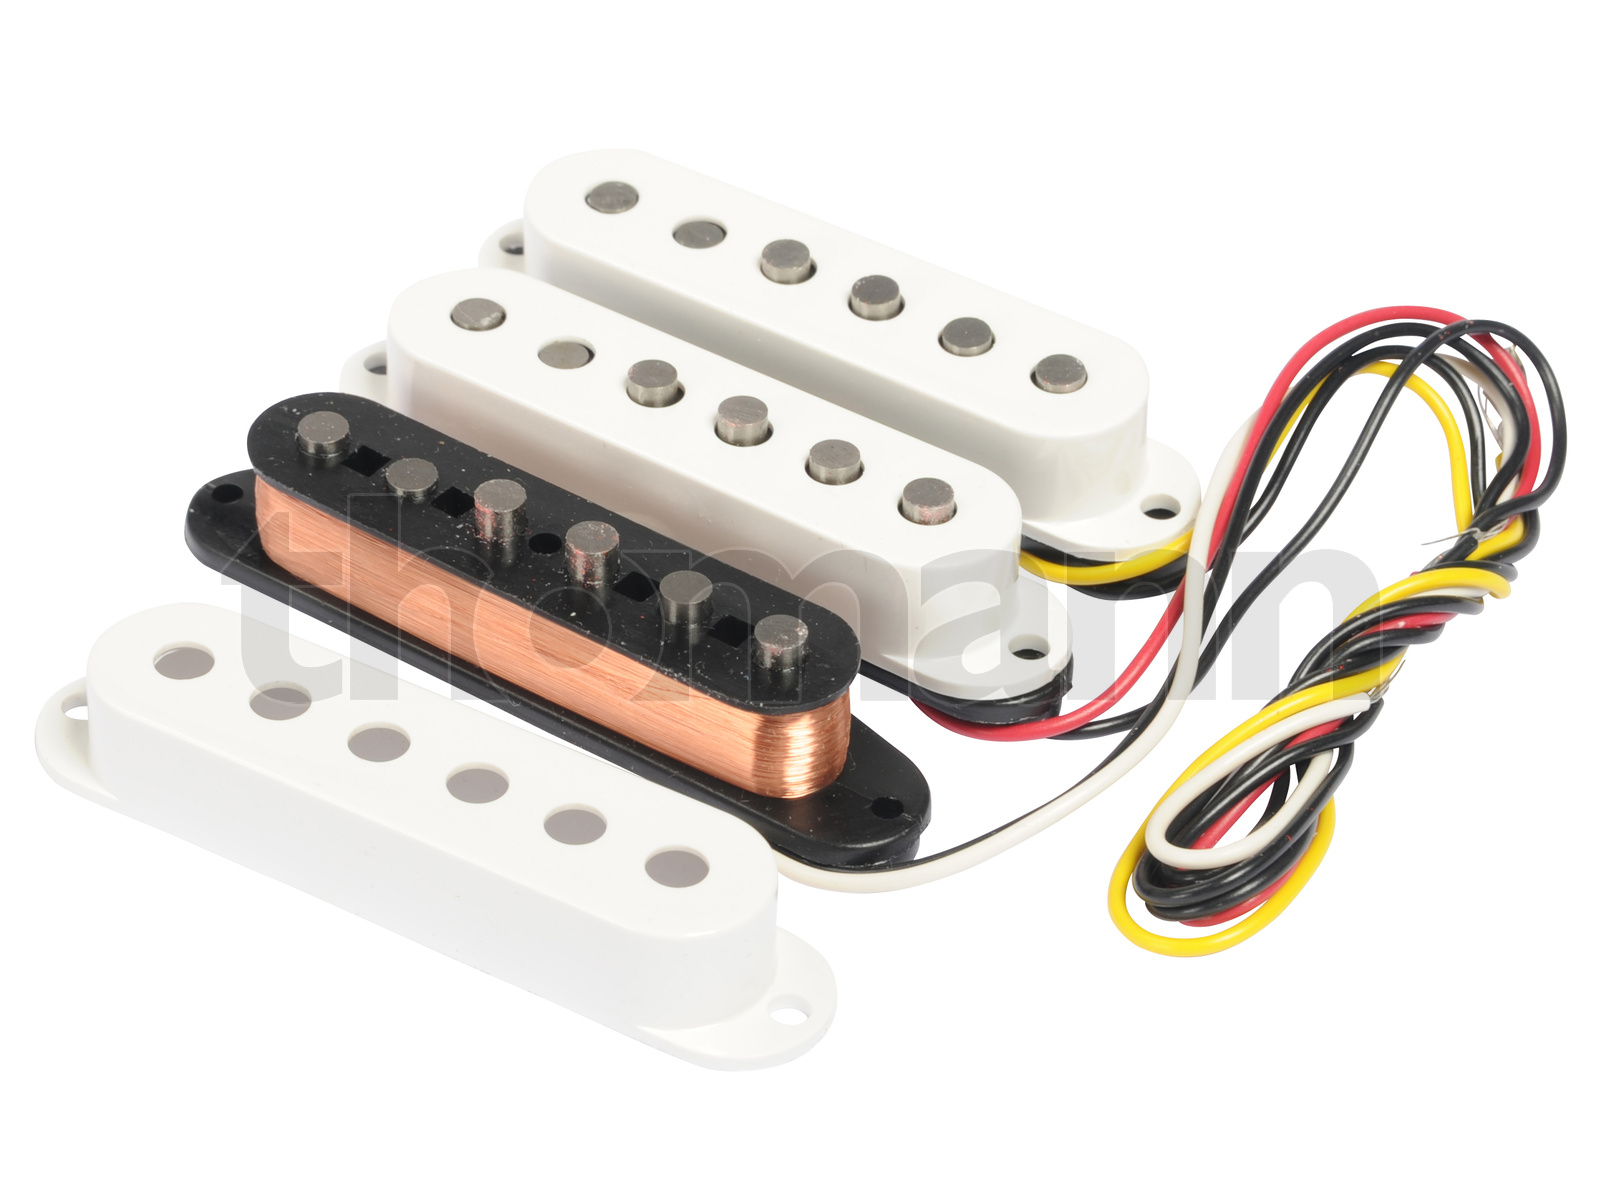 fender tex mex strat pickups 612246 fender tex mex strat pickups image ( 612246) audiofanzine fender tex mex pickup wiring diagram at panicattacktreatment.co